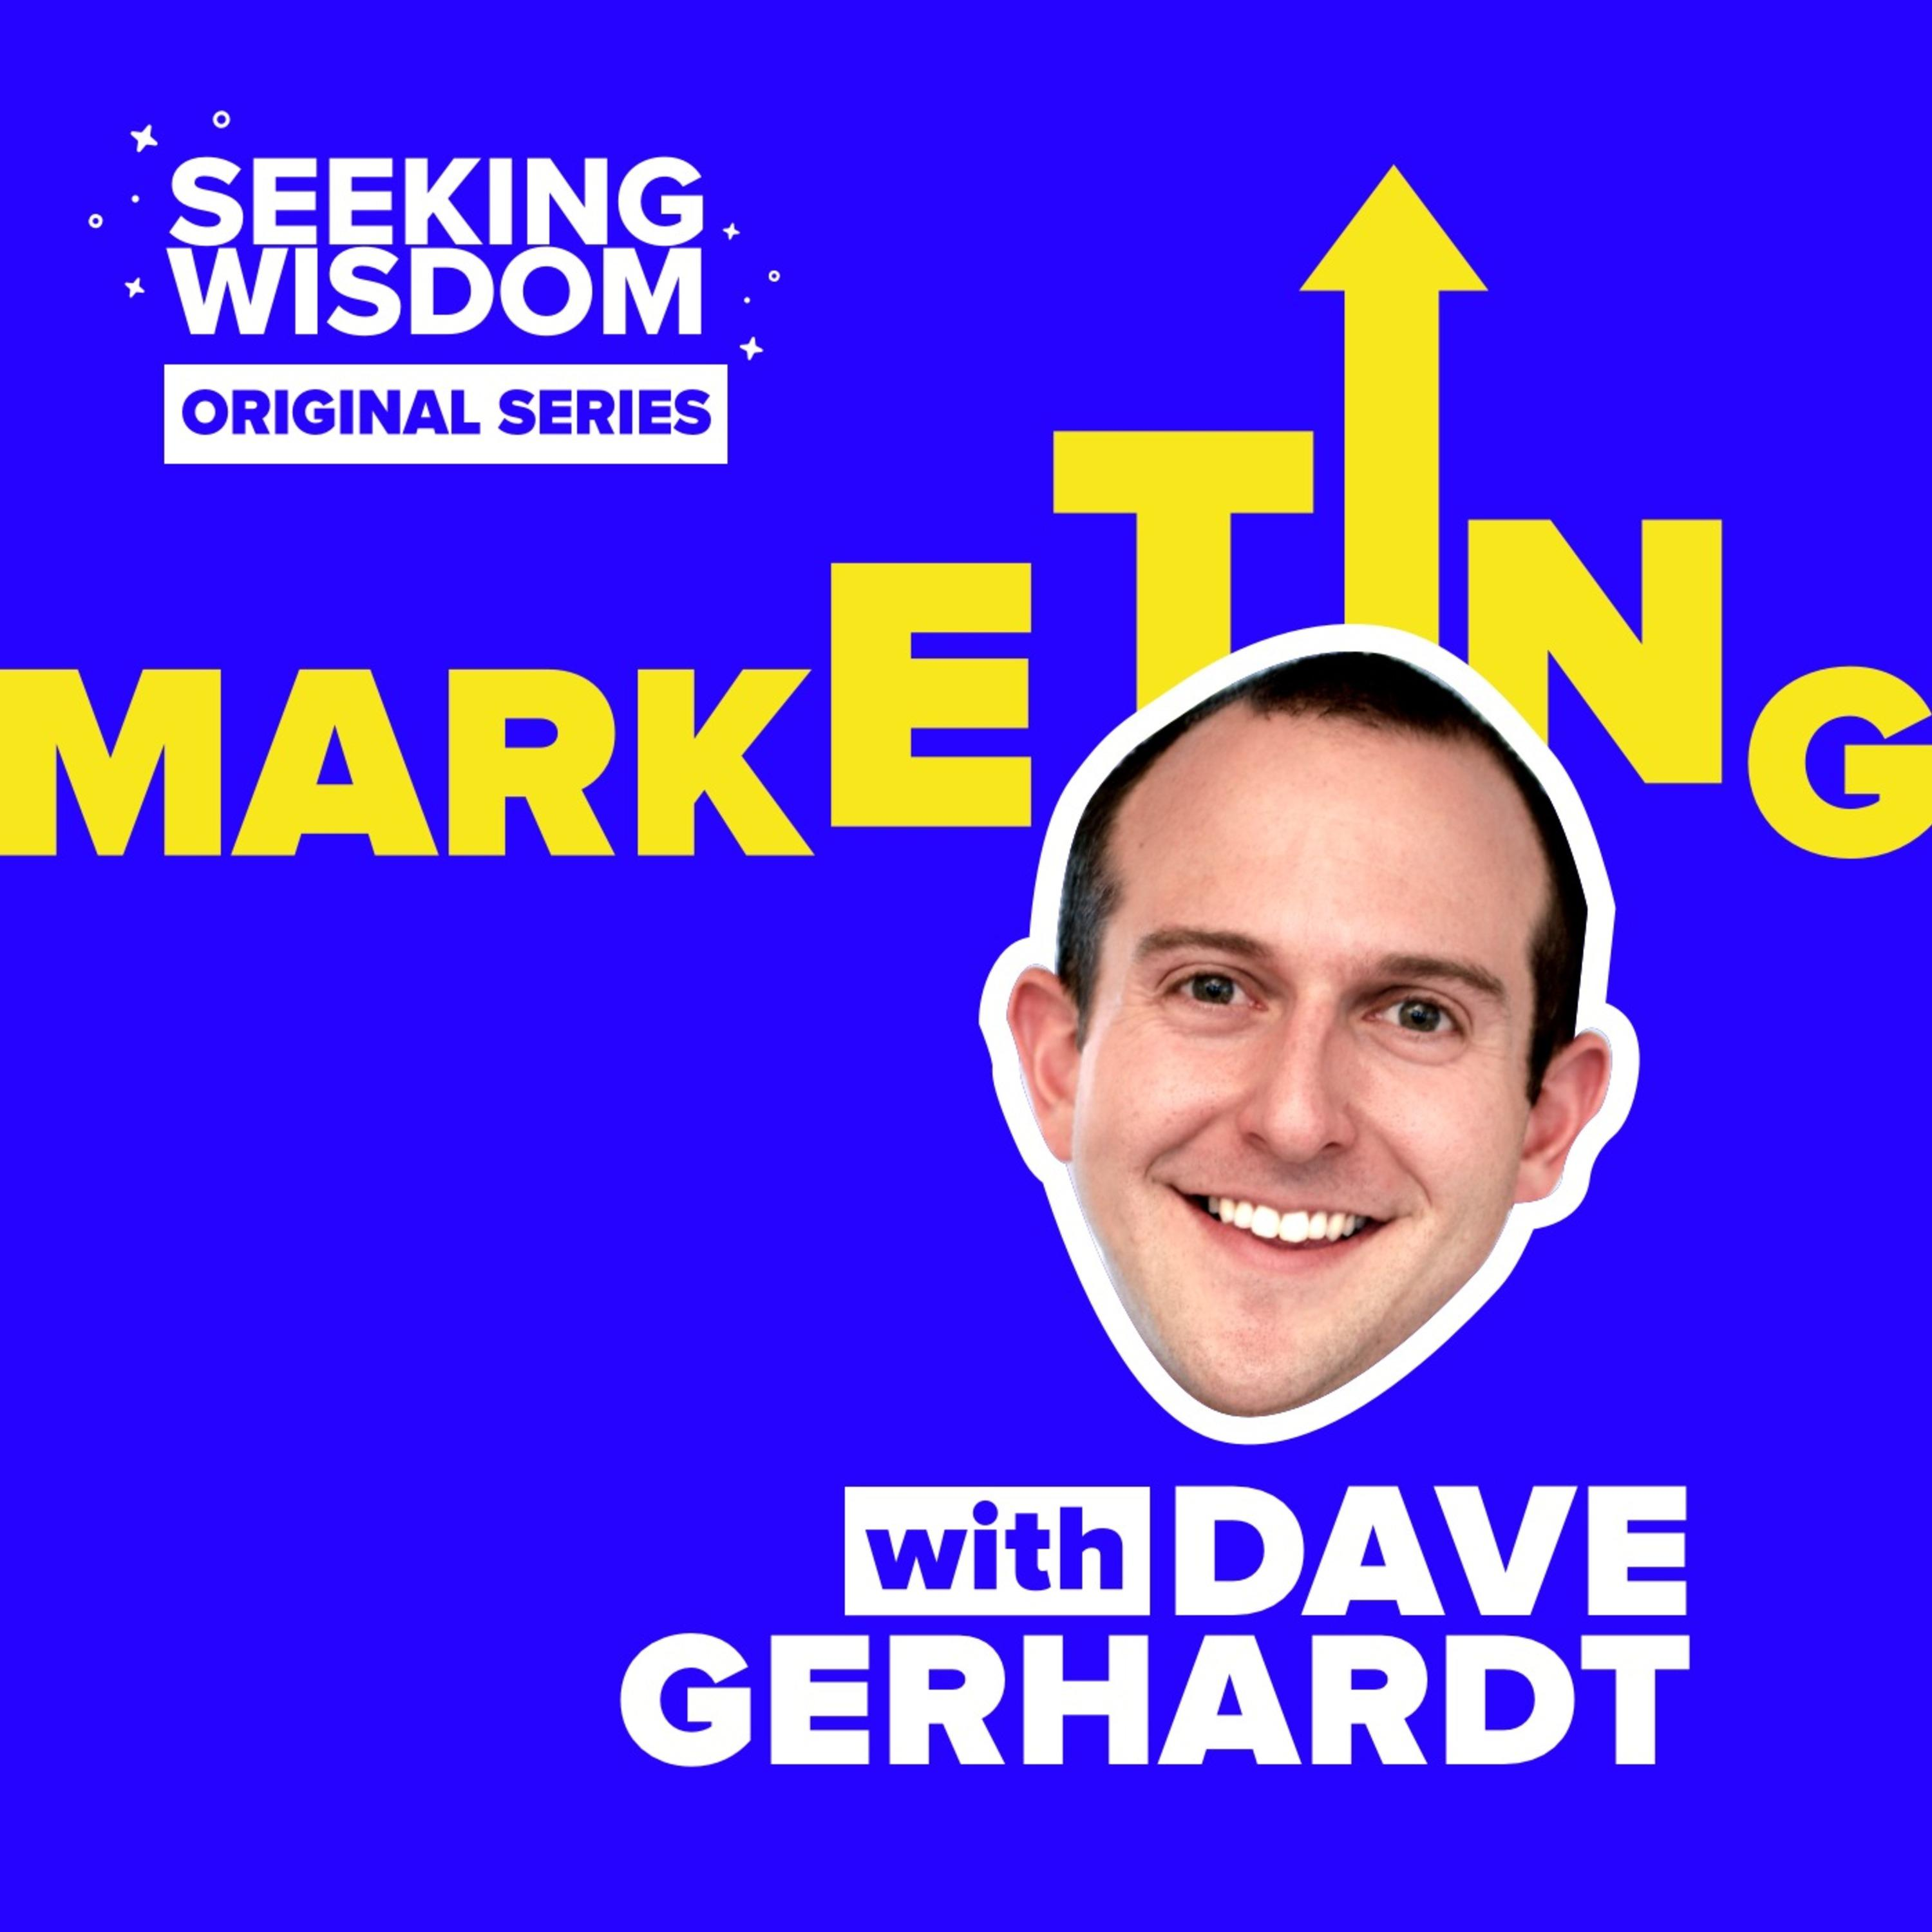 #Marketing: The One Secret To Building A Brand You Need To Know For 2018